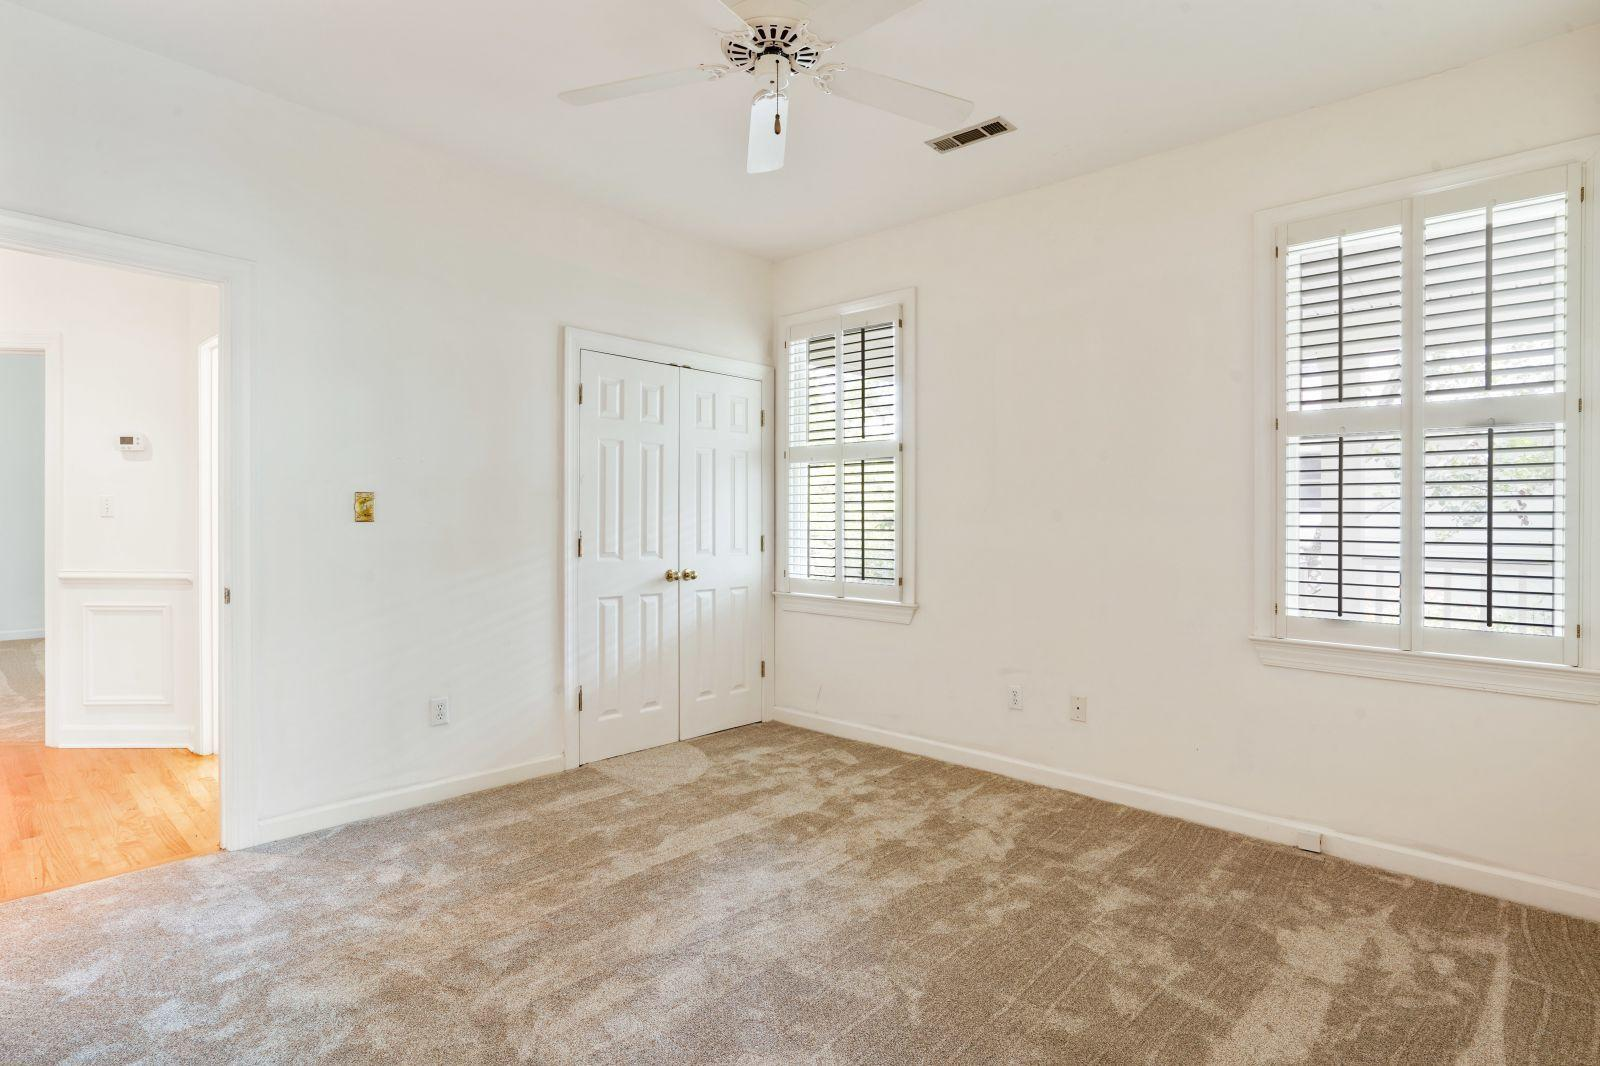 Simmons Pointe Homes For Sale - 1551 Ben Sawyer, Mount Pleasant, SC - 16